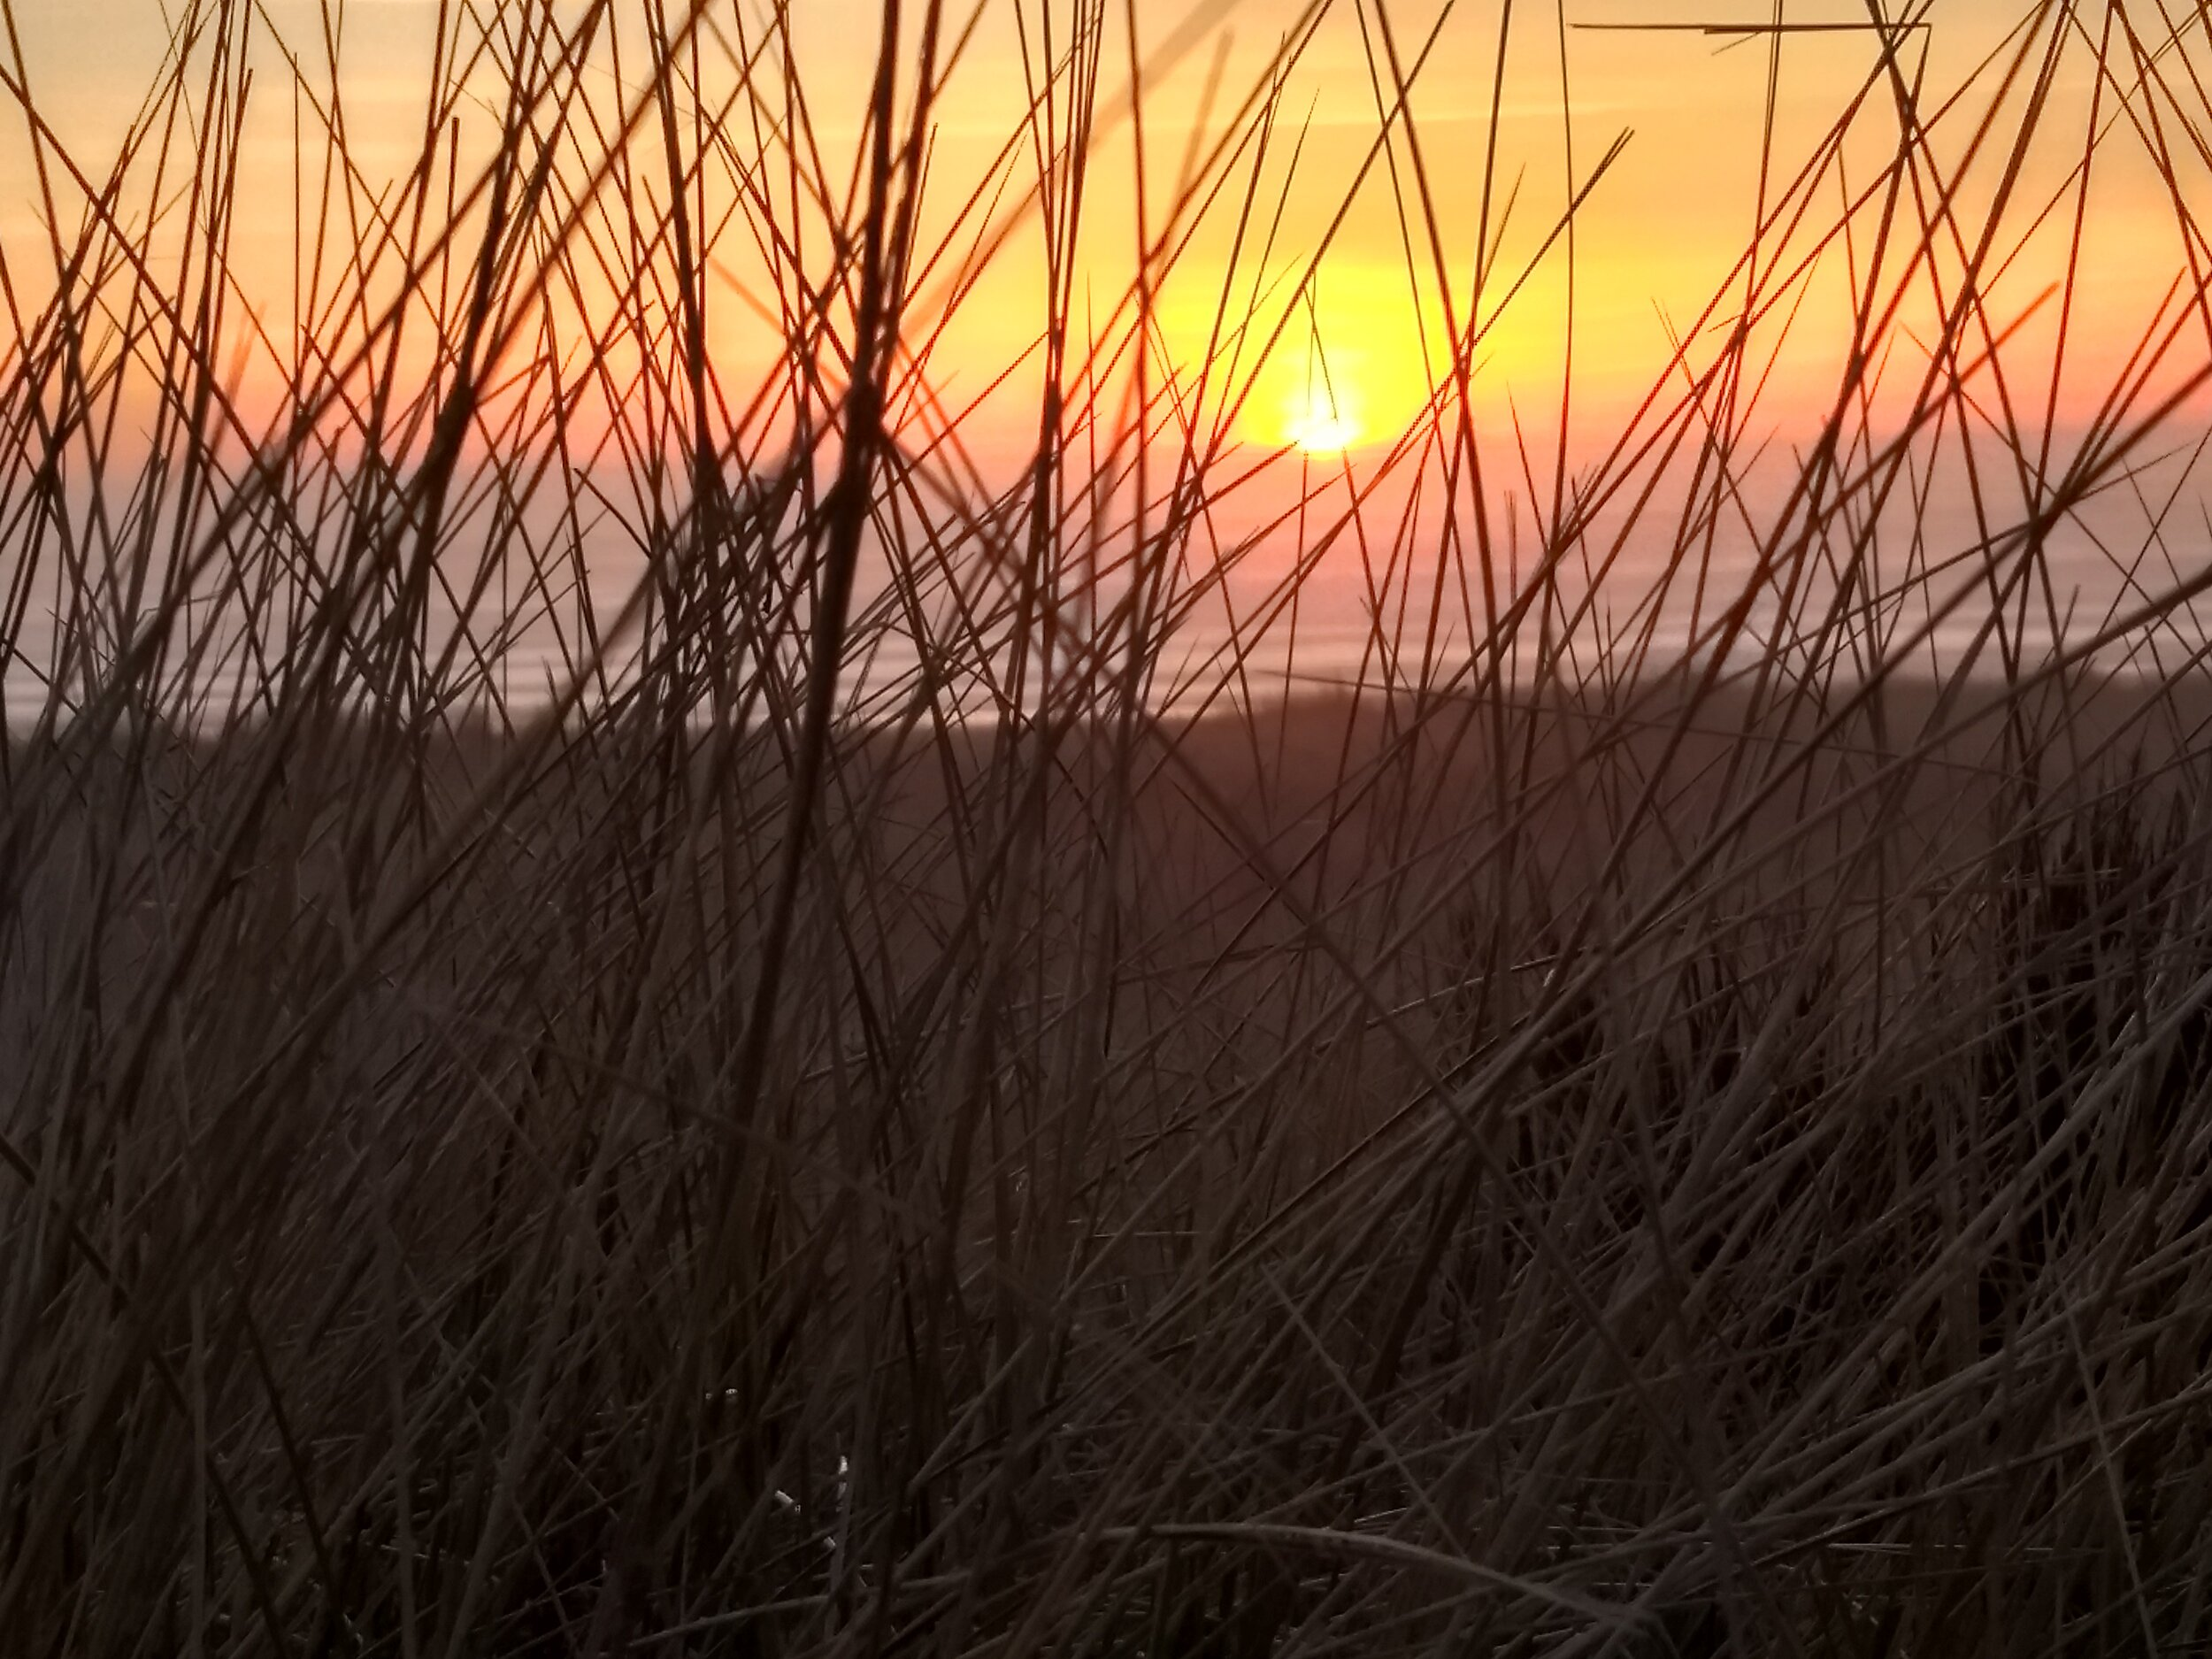 There is a trail across the crest of the sand dunes between the campground and beach that offers amazing views of the sunset.